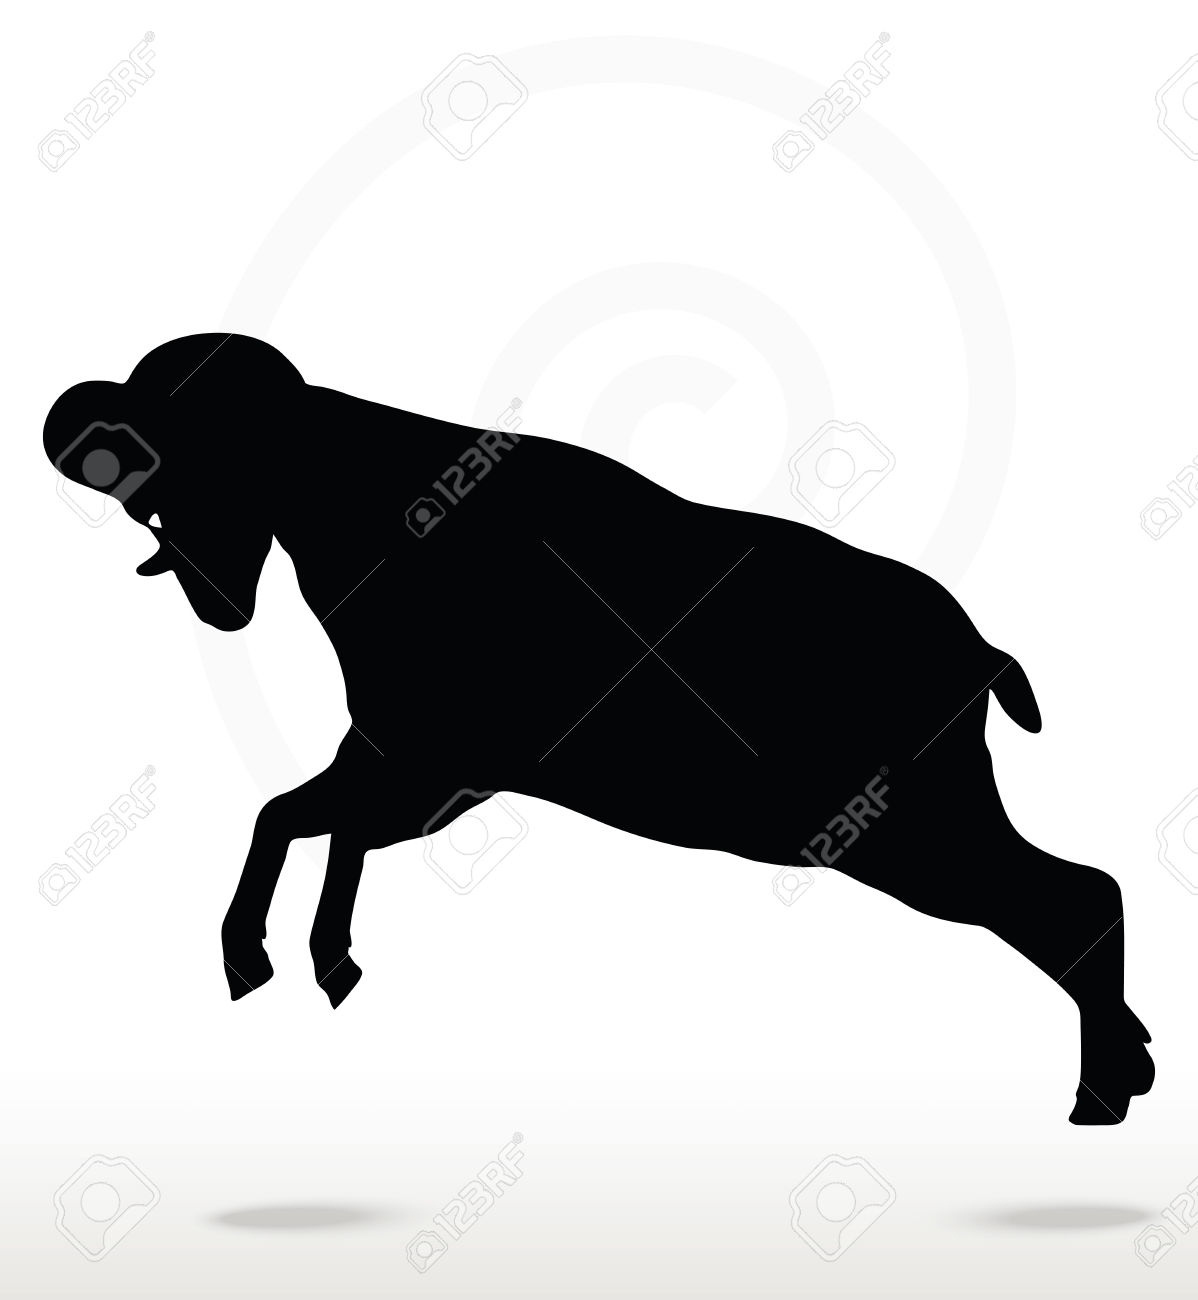 Sheep Vector Silhouette